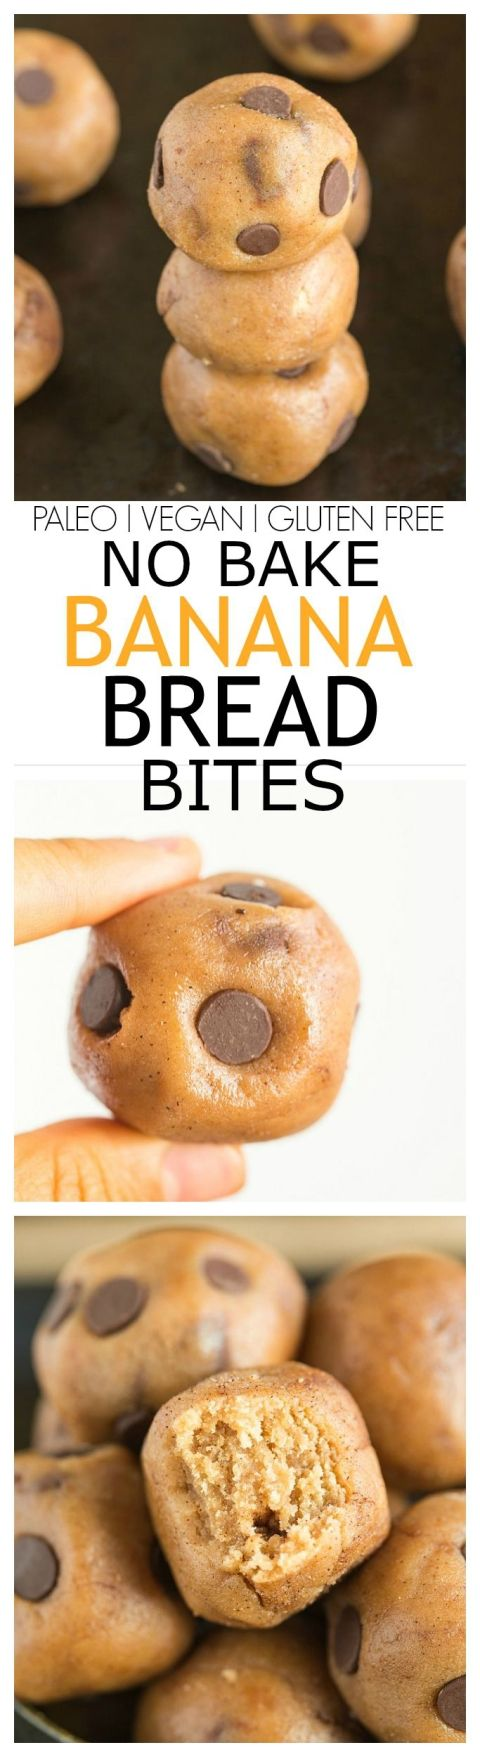 No Bake Banana Bread Bites- Delicious, healthy bites which taste JUST like banana bread without the need for baking! Quick, easy and a delicious snack! {vegan, gluten free, dairy free, paleo} #Paleo #Bread #Recipes